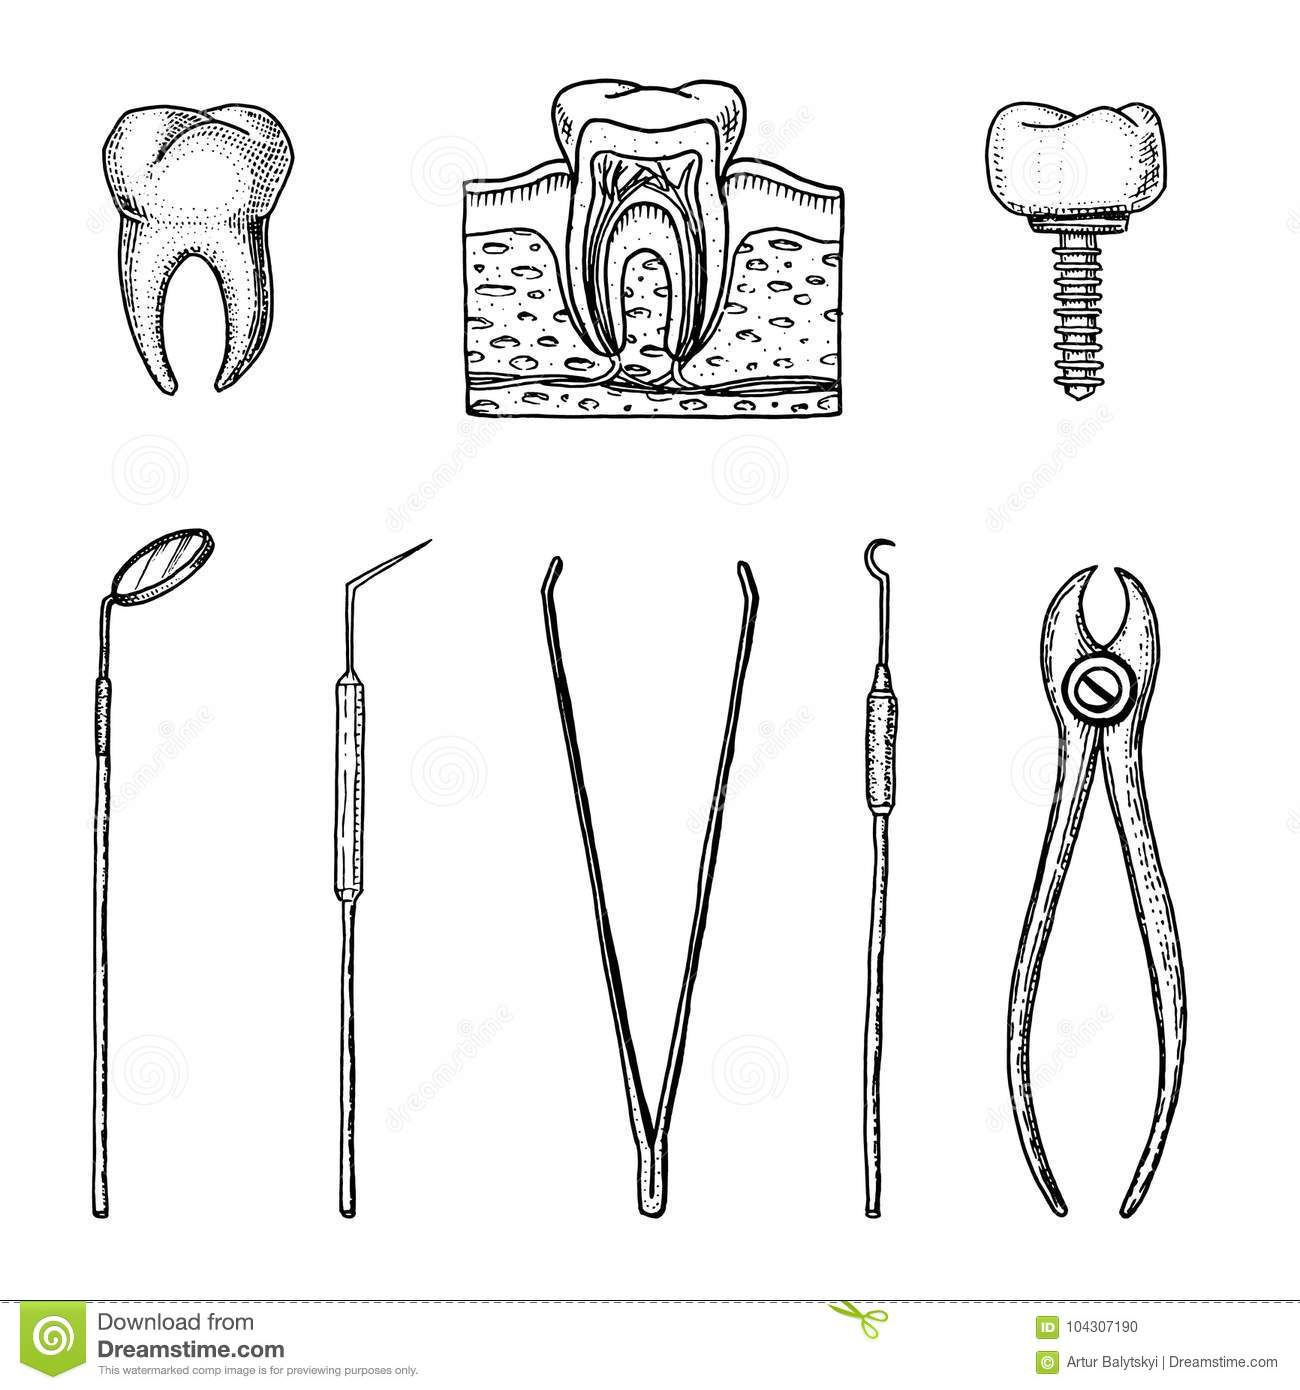 hight resolution of instruments equipment of the dentist for teeth enamel set doctor oral cavity clean or